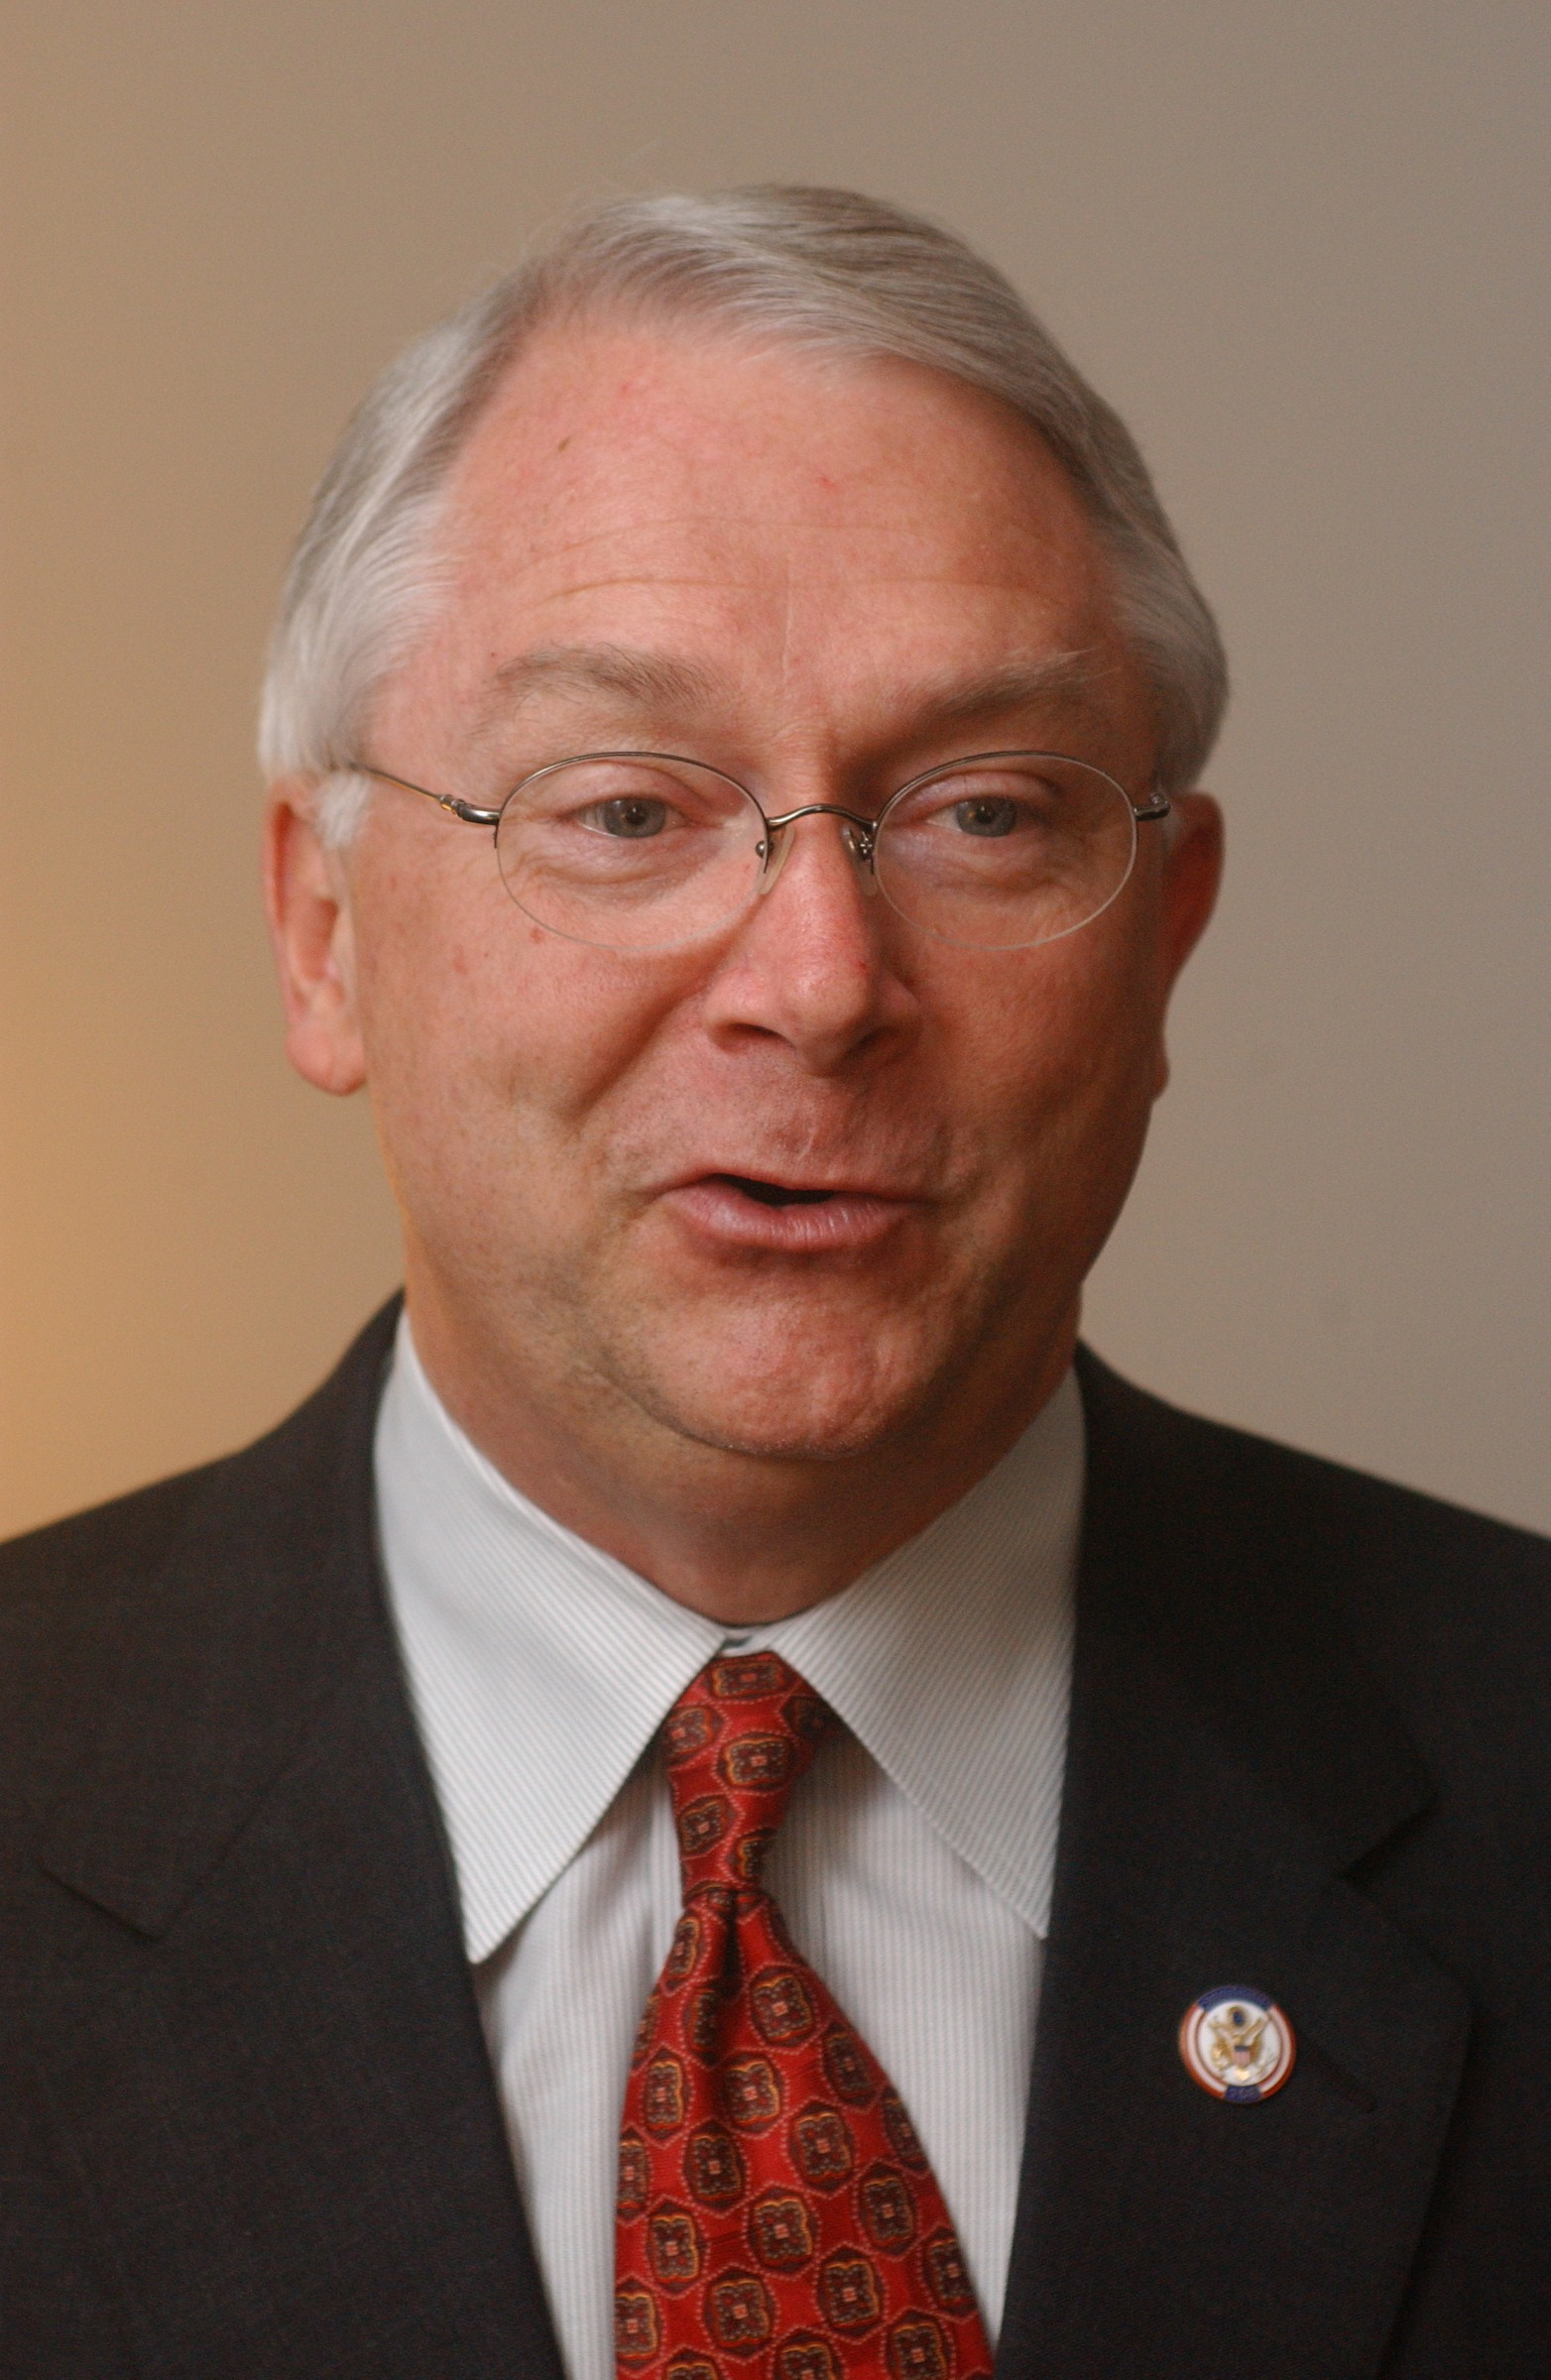 Neugebauer was first elected in a 2003 special election. (Scott J. Ferrell/CQ Roll Call file photo)